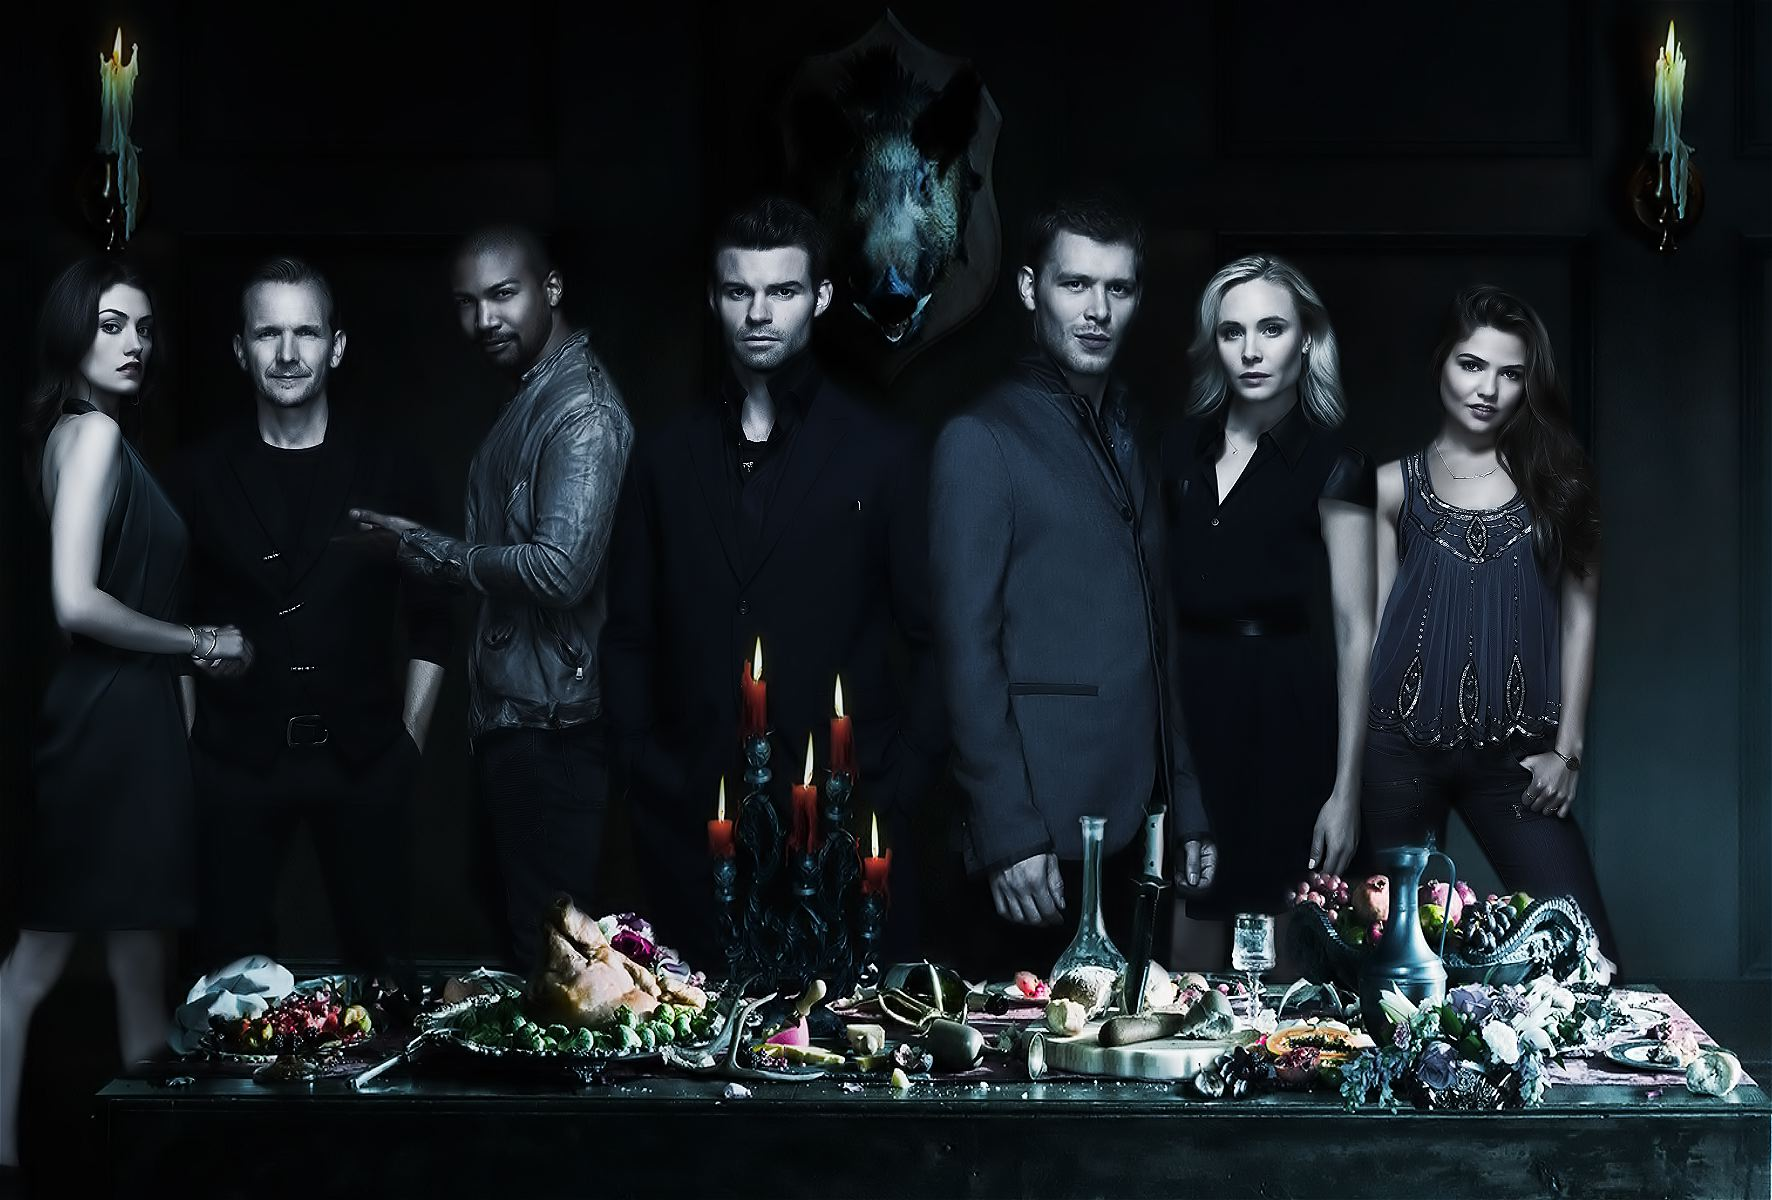 The Originals: Cast Portrait by MacSchaer on DeviantArt